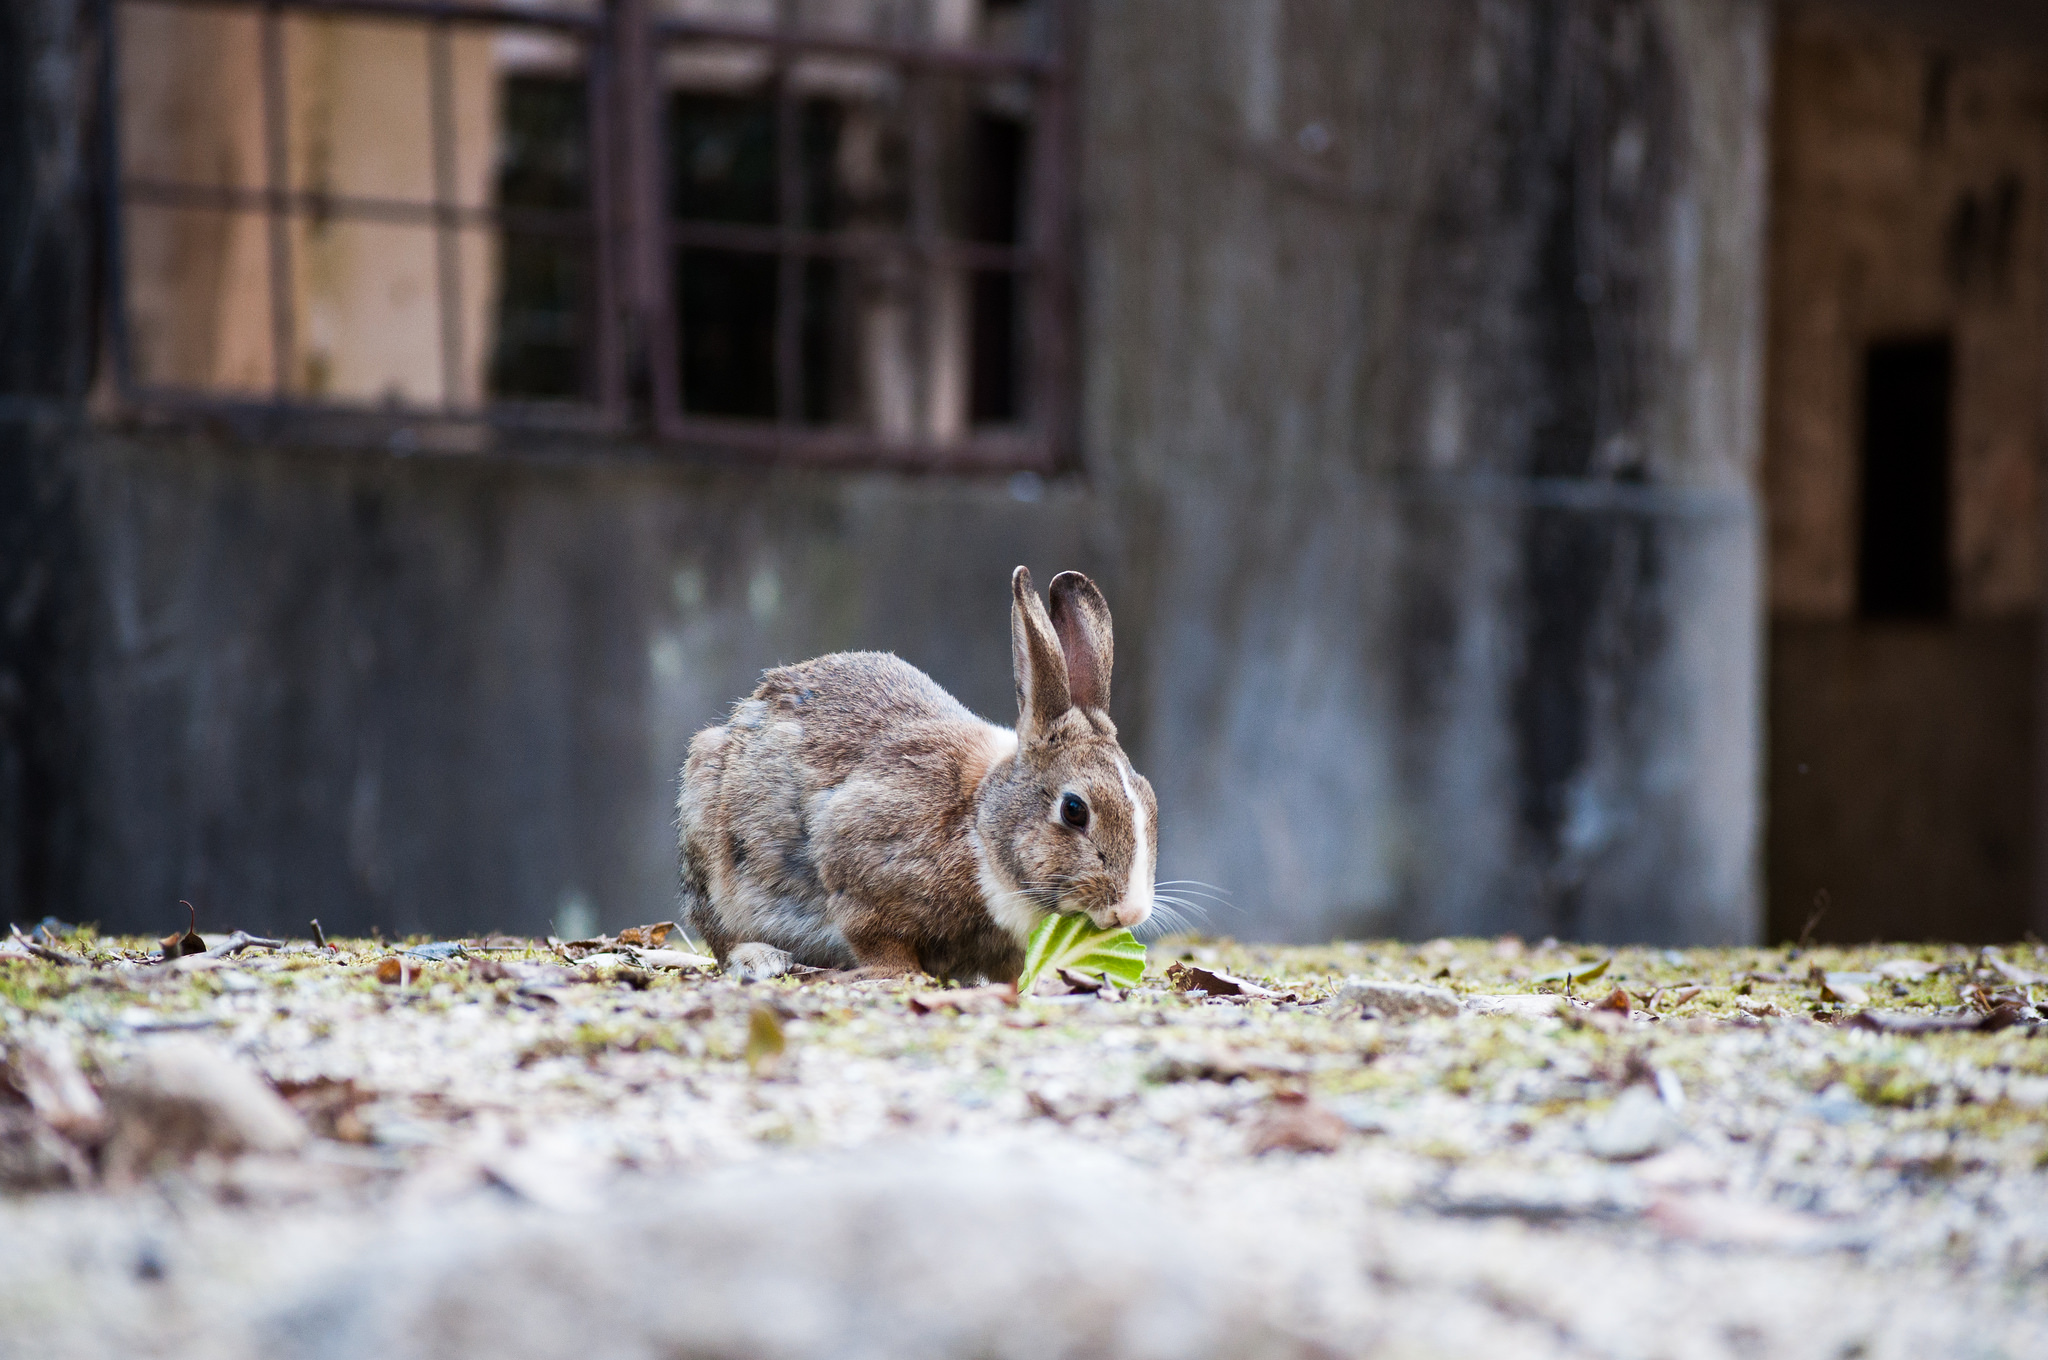 The Cutest Place In Japan A Guide To Visiting Rabbit Island Japan Cheapo